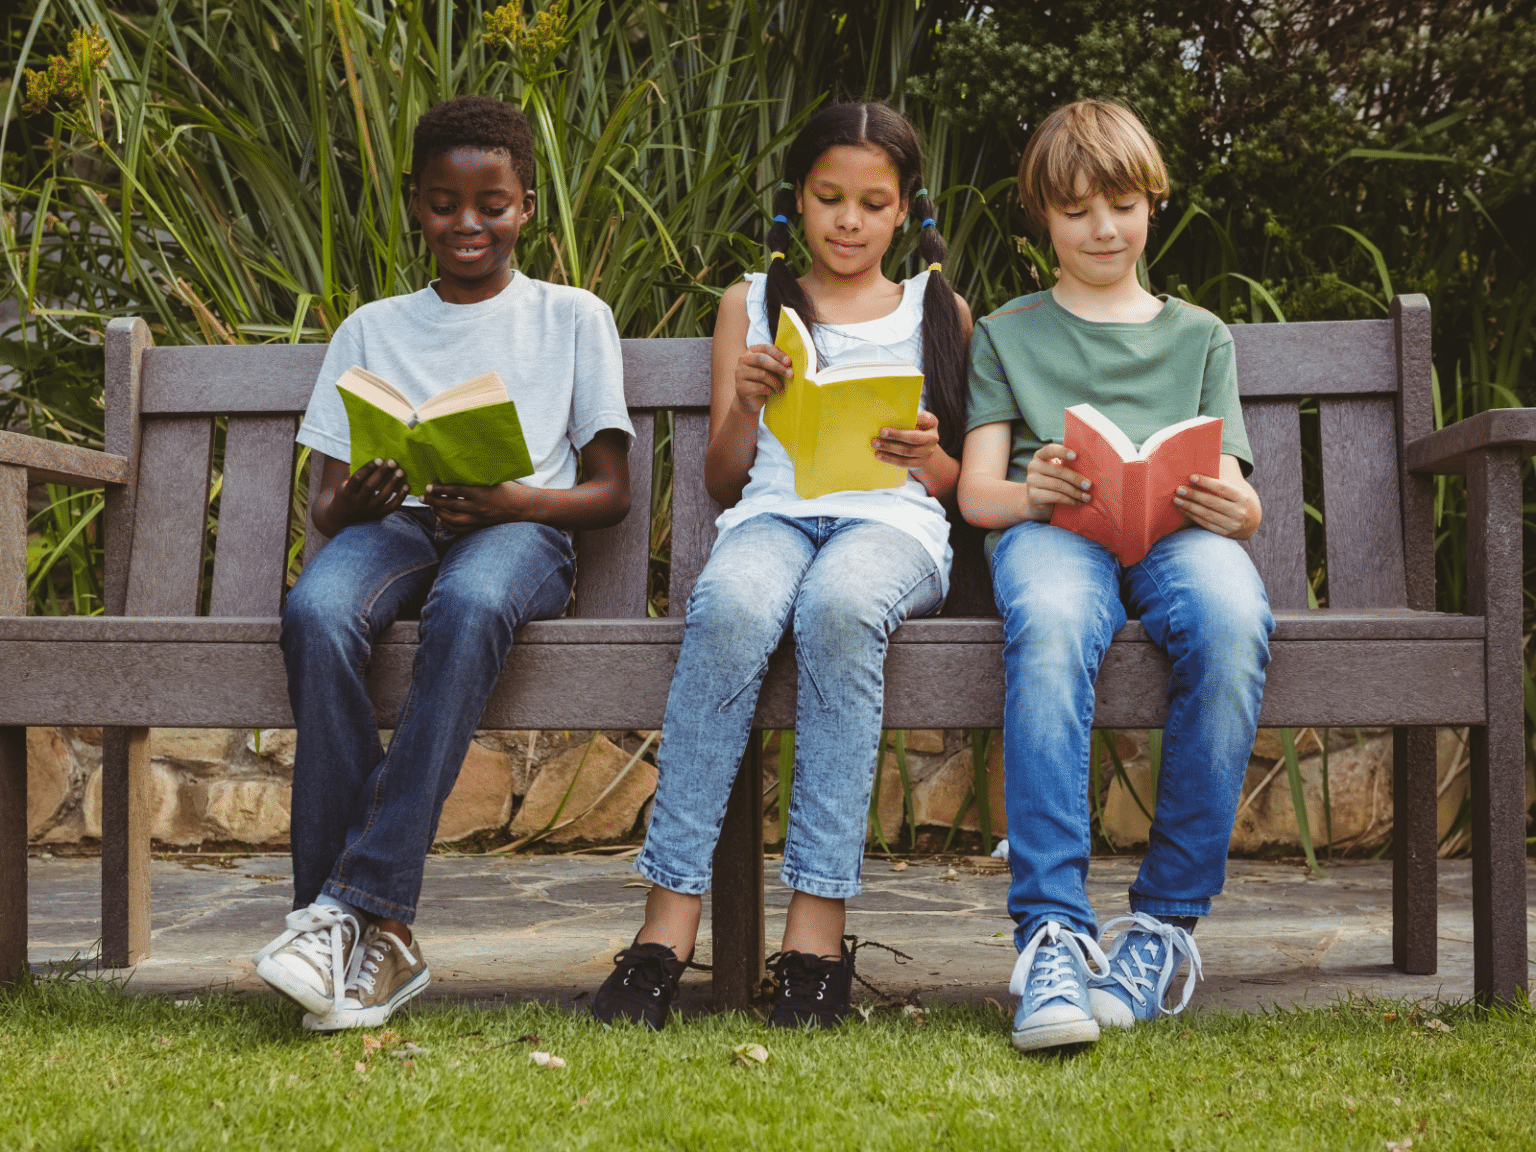 Suggested Reading for Grades 3-5